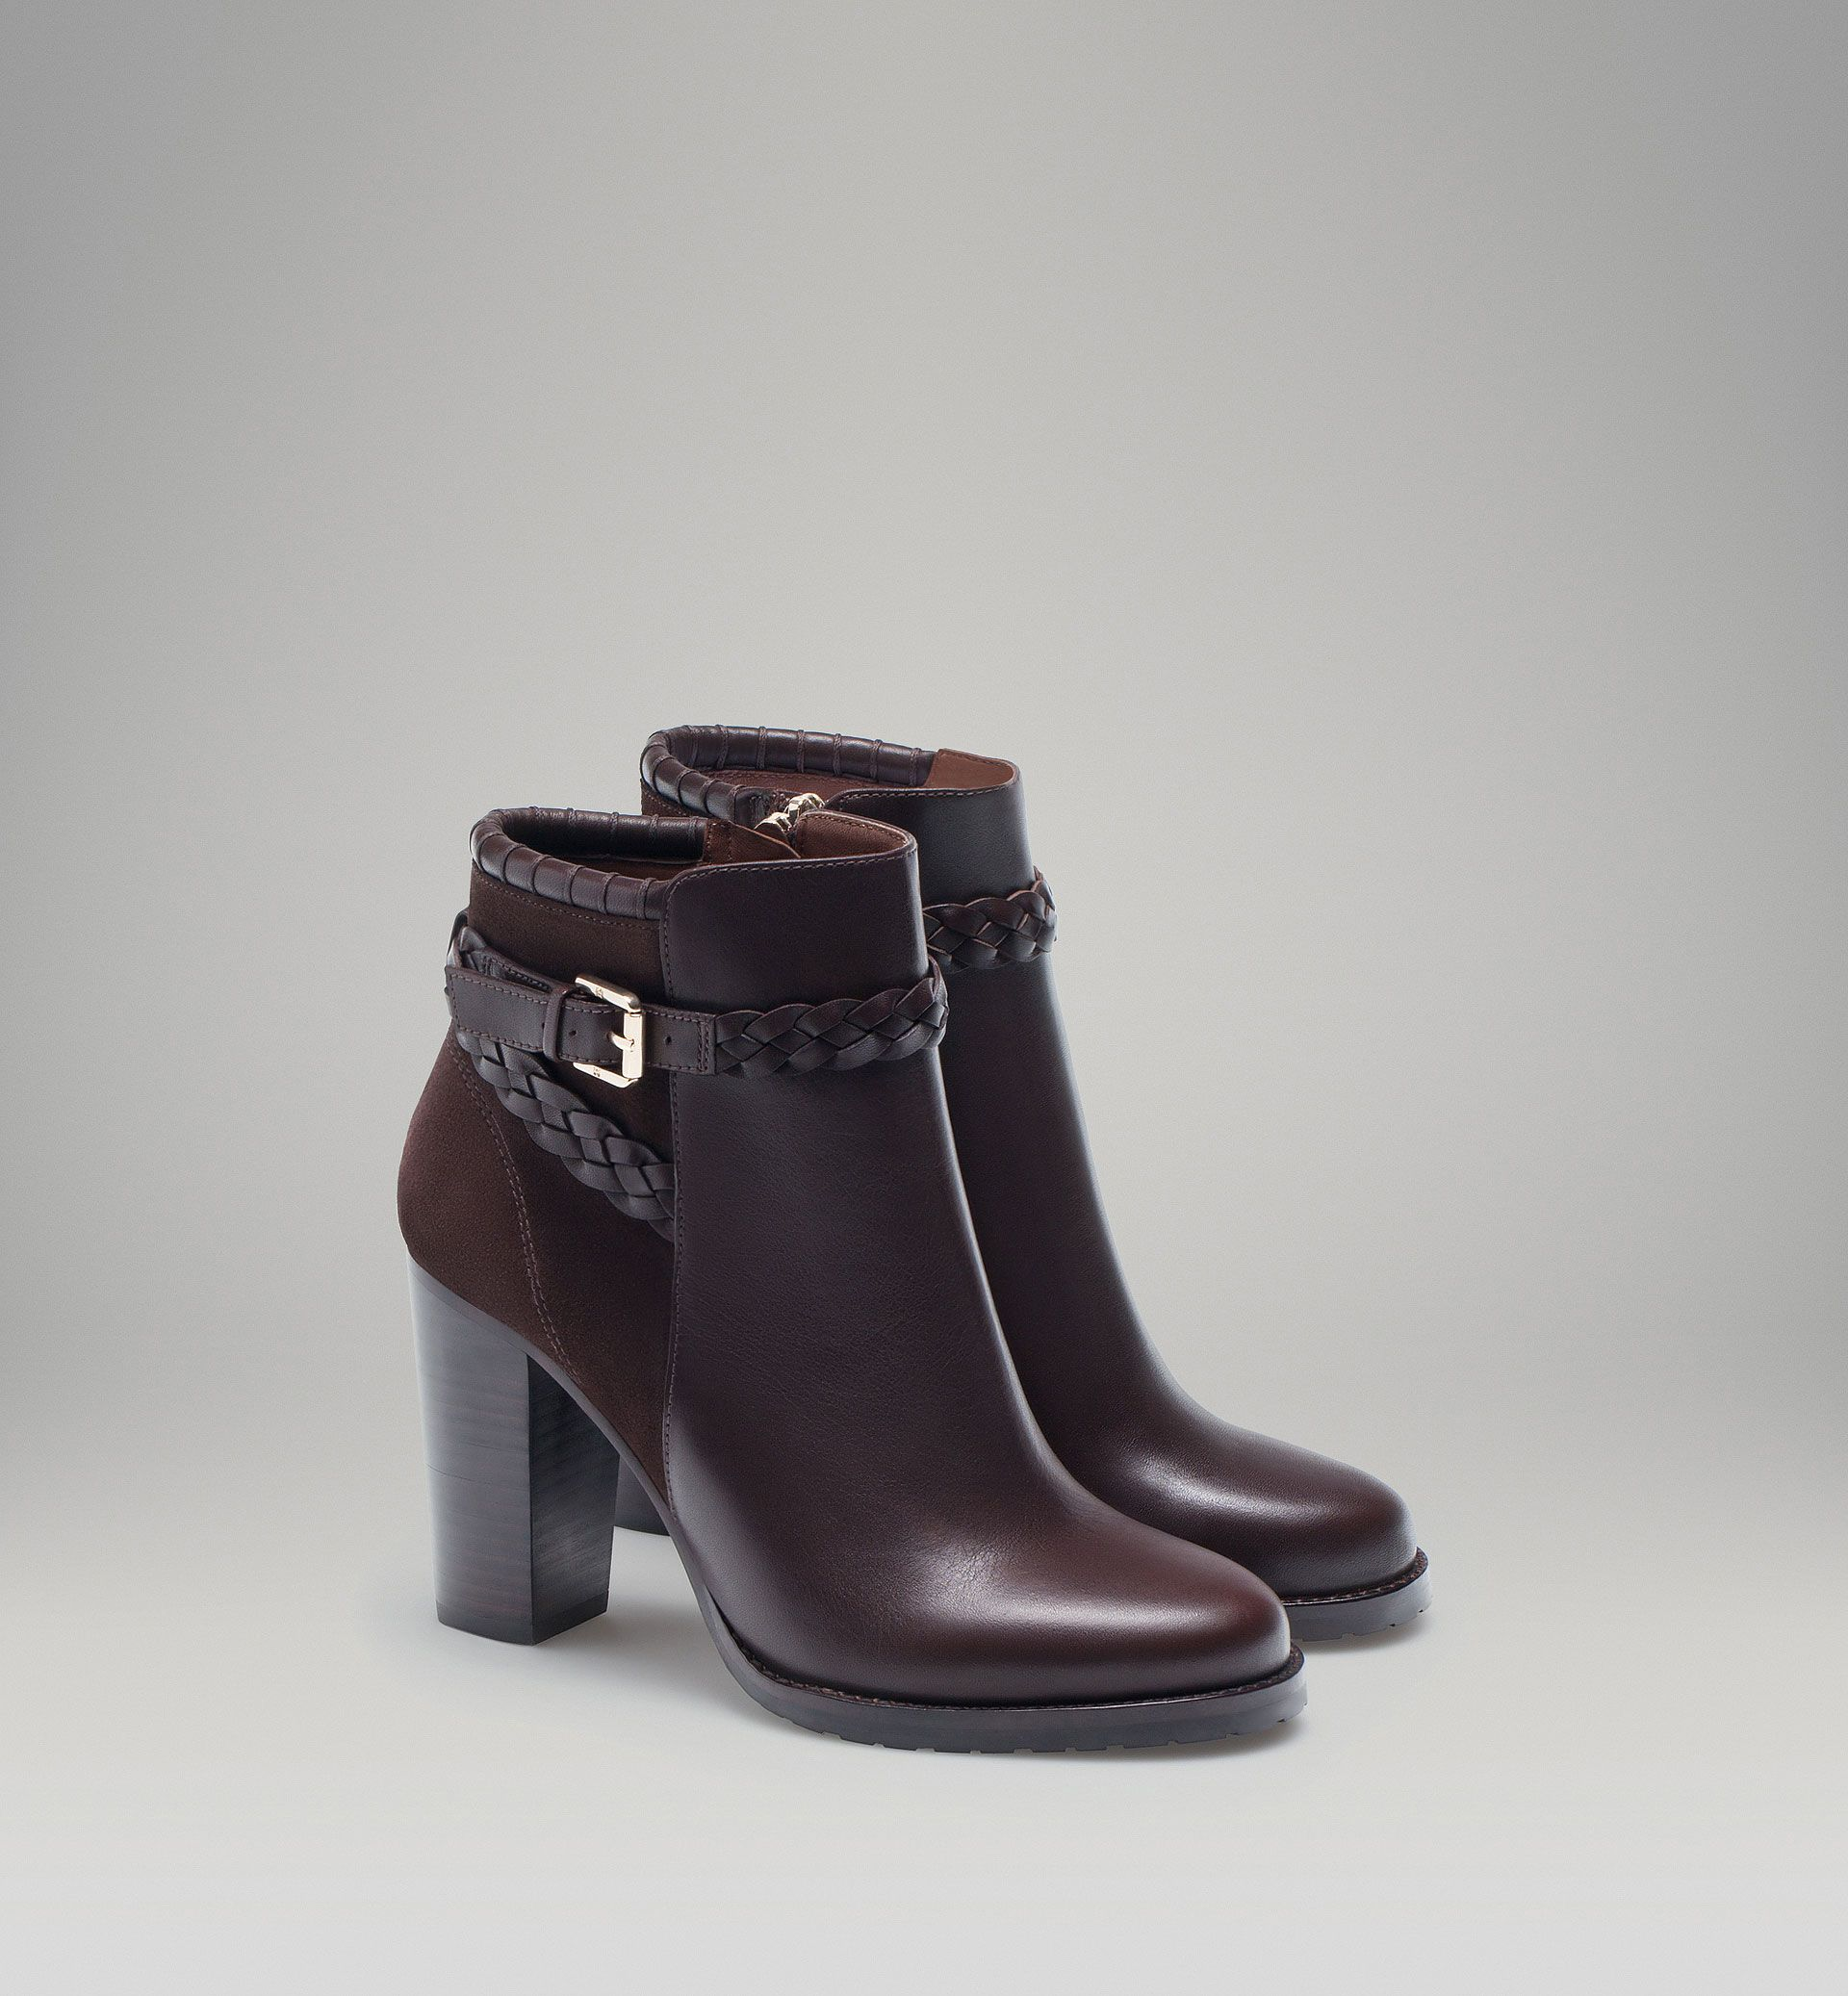 89cb5b32947b8 HIGH-HEEL ANKLE BOOT WITH PLAITED STRAPS |Massimo Dutti | Yes ...